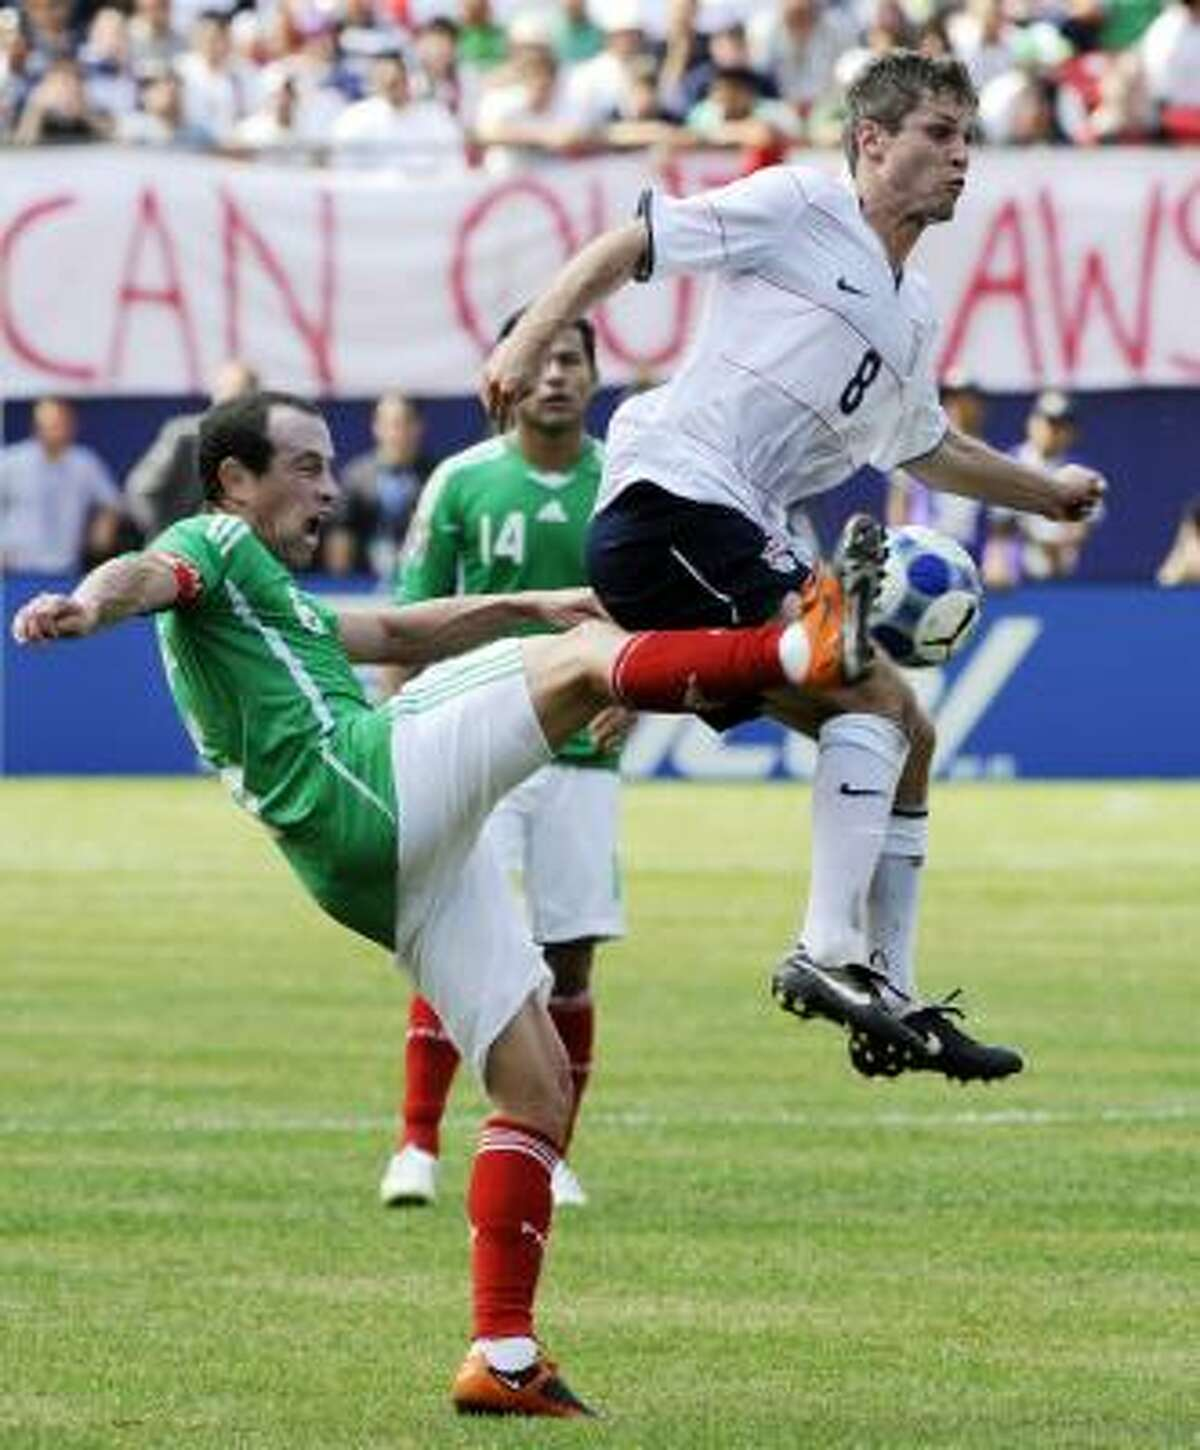 Mexico's Gerardo Torrado, left, and the United States' Logan Pause battle for the ball.